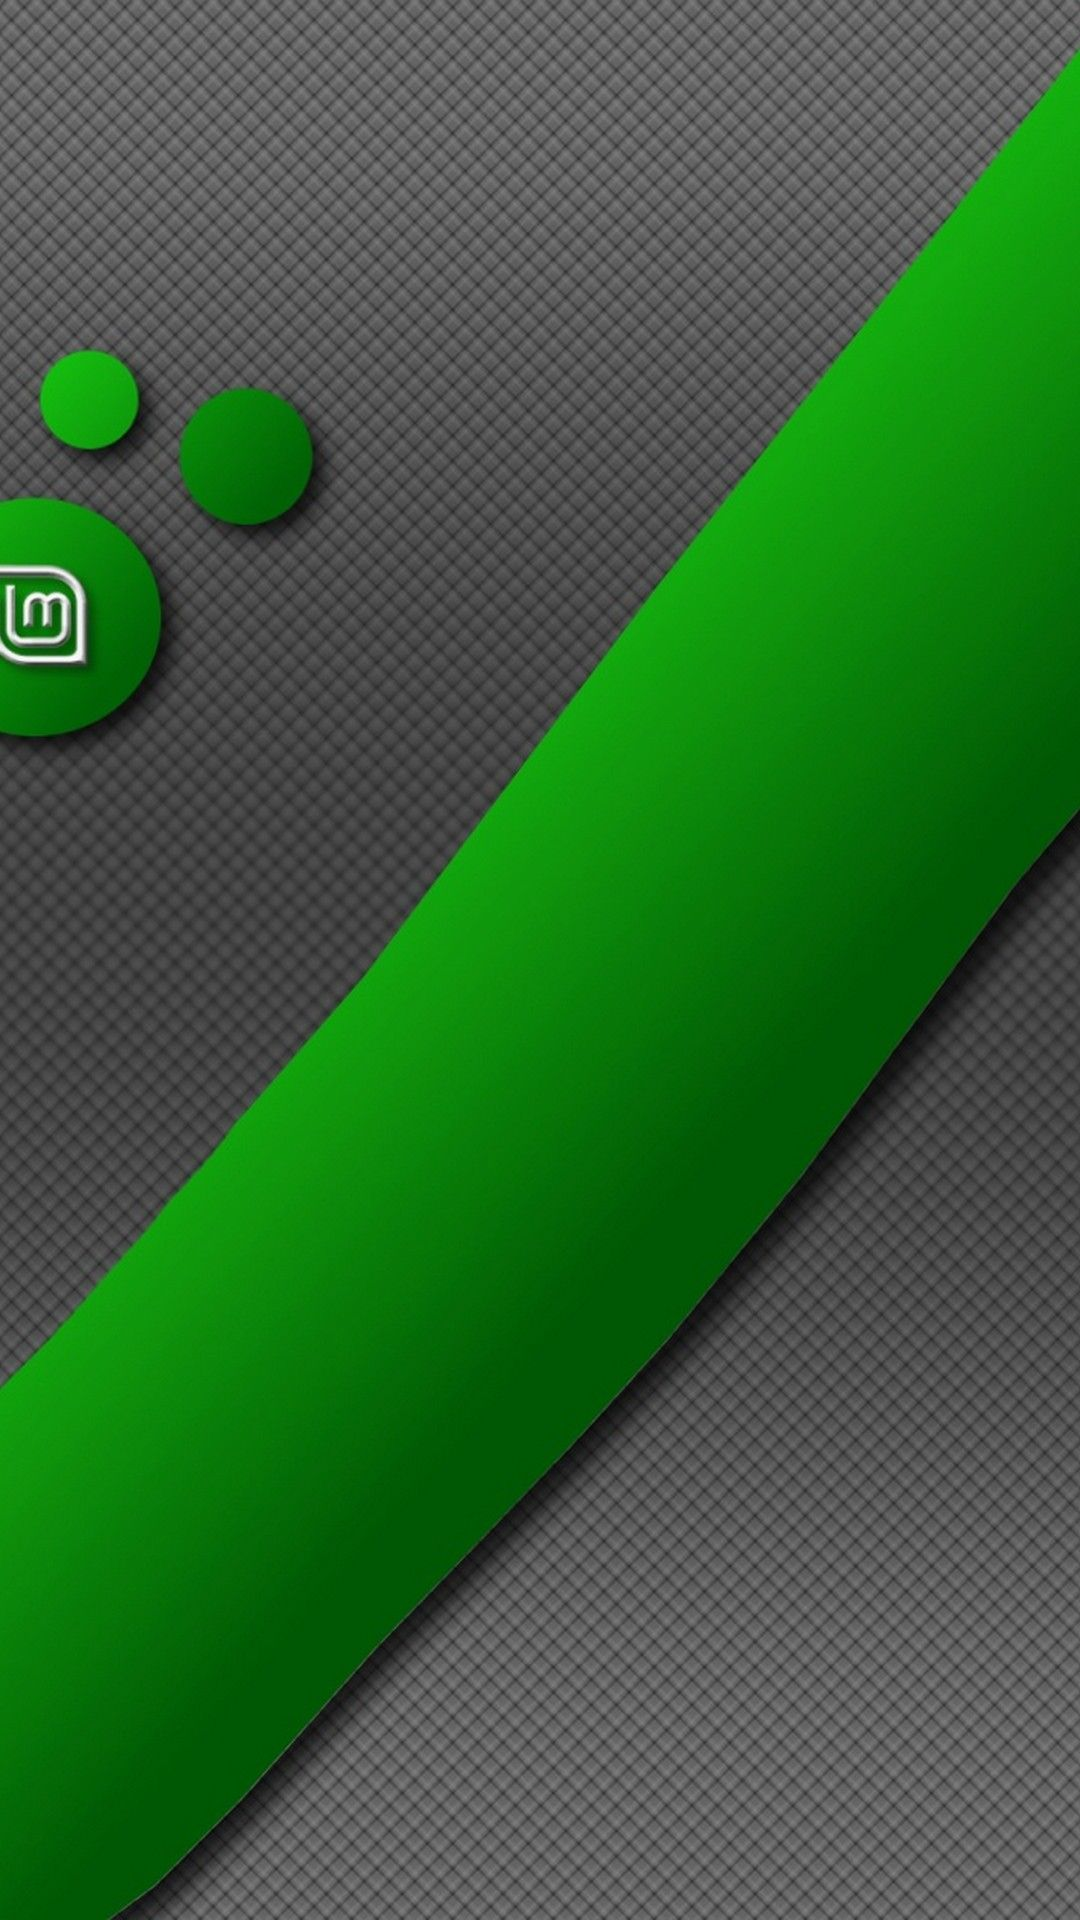 Green Wallpaper For Mobile Android Best Wallpaper Hd Mobile Wallpaper Android Mobile Wallpaper Wallpaper